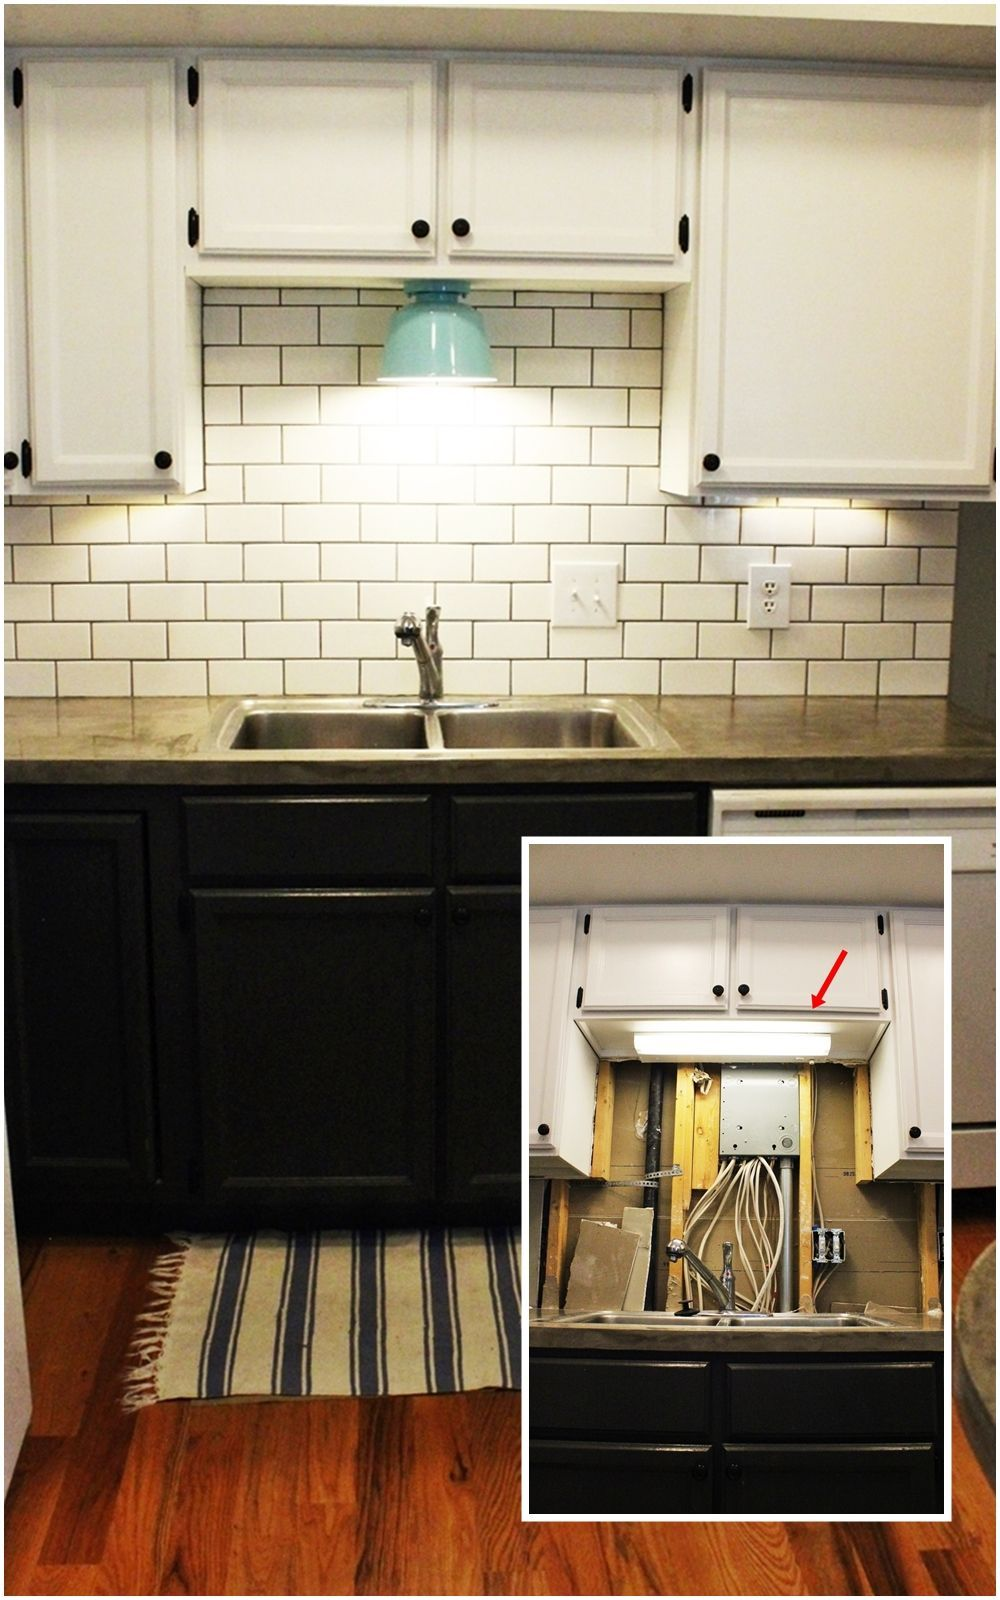 DIY Kitchen Lighting Upgrade: LED Under